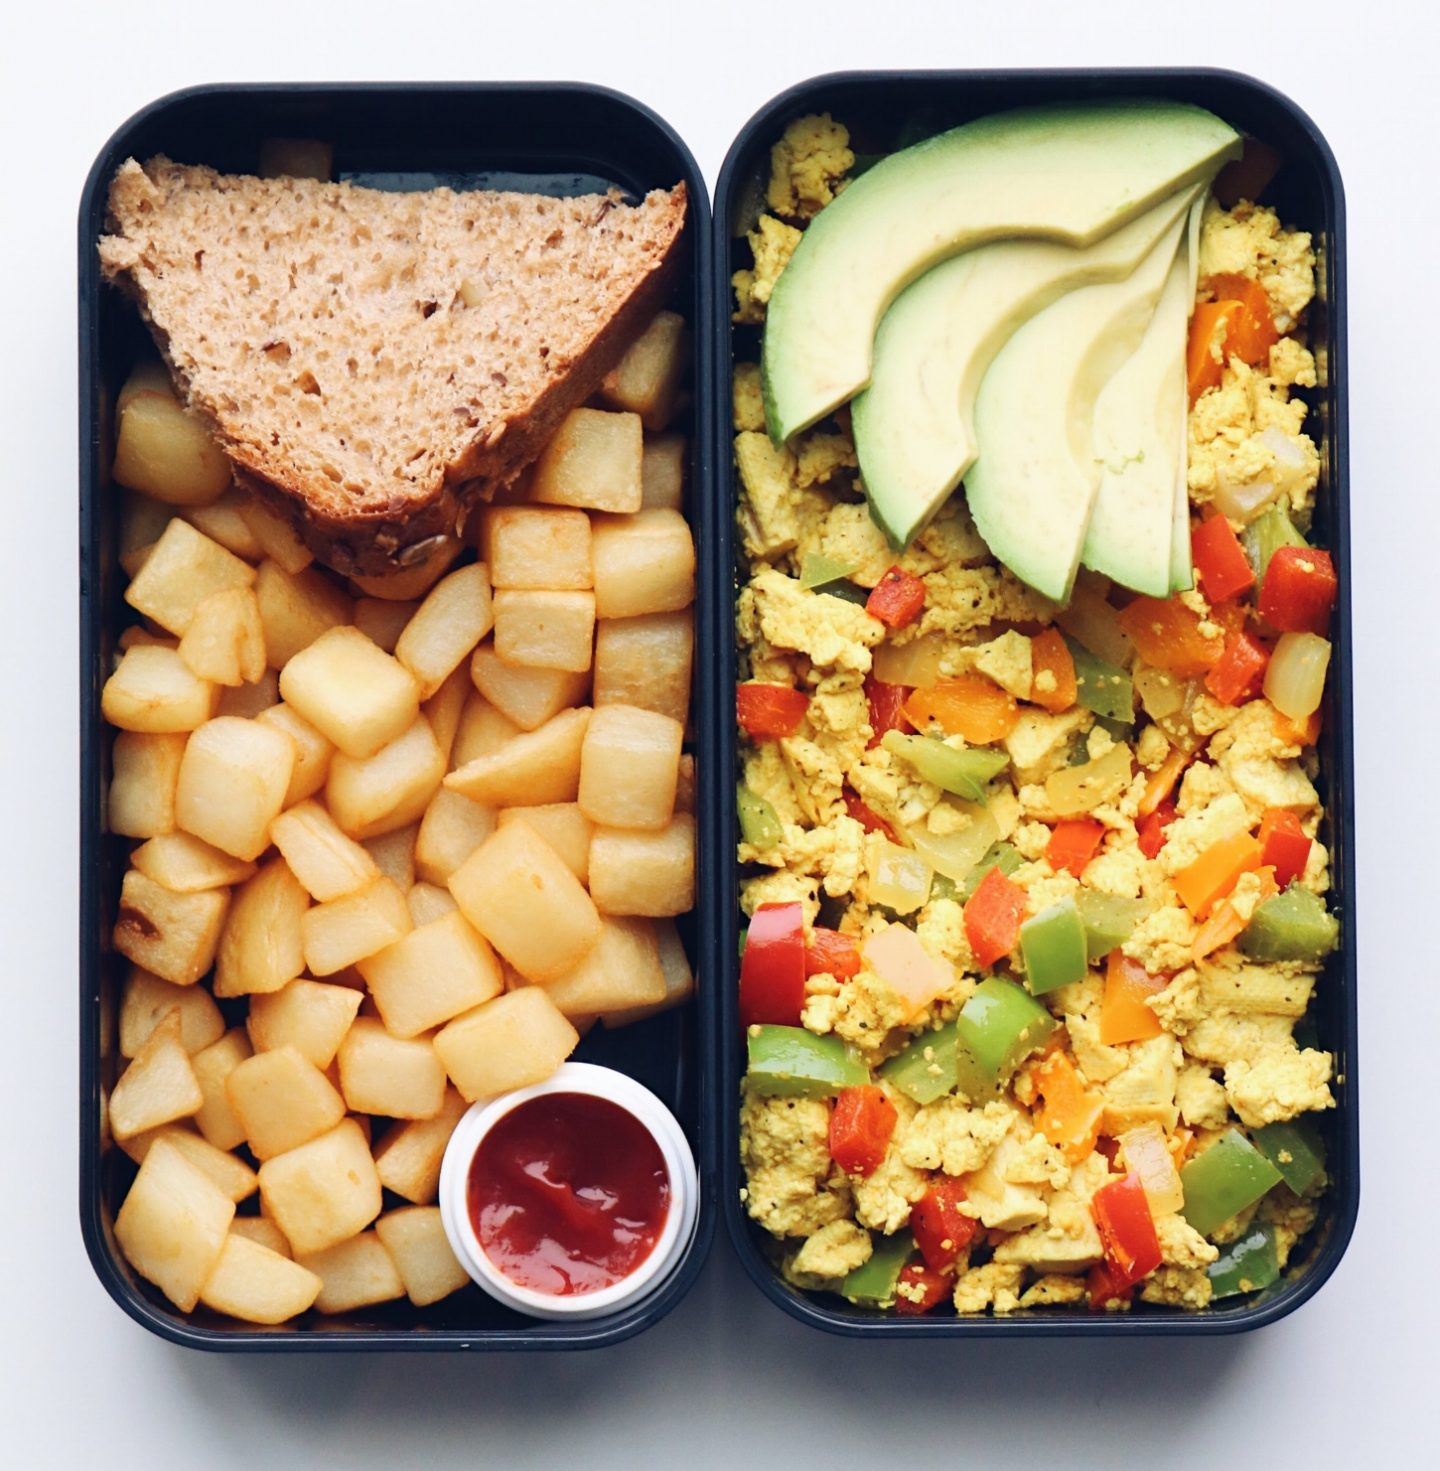 Jun 30, · Woody's Lunch Box has more up for grabs in the morning, including a Smoked Turkey Breakfast Sandwich ($) which also features melted Swiss cheese, sautéed green pepper, onions, and scrambled eggs on grilled sourdough bread.